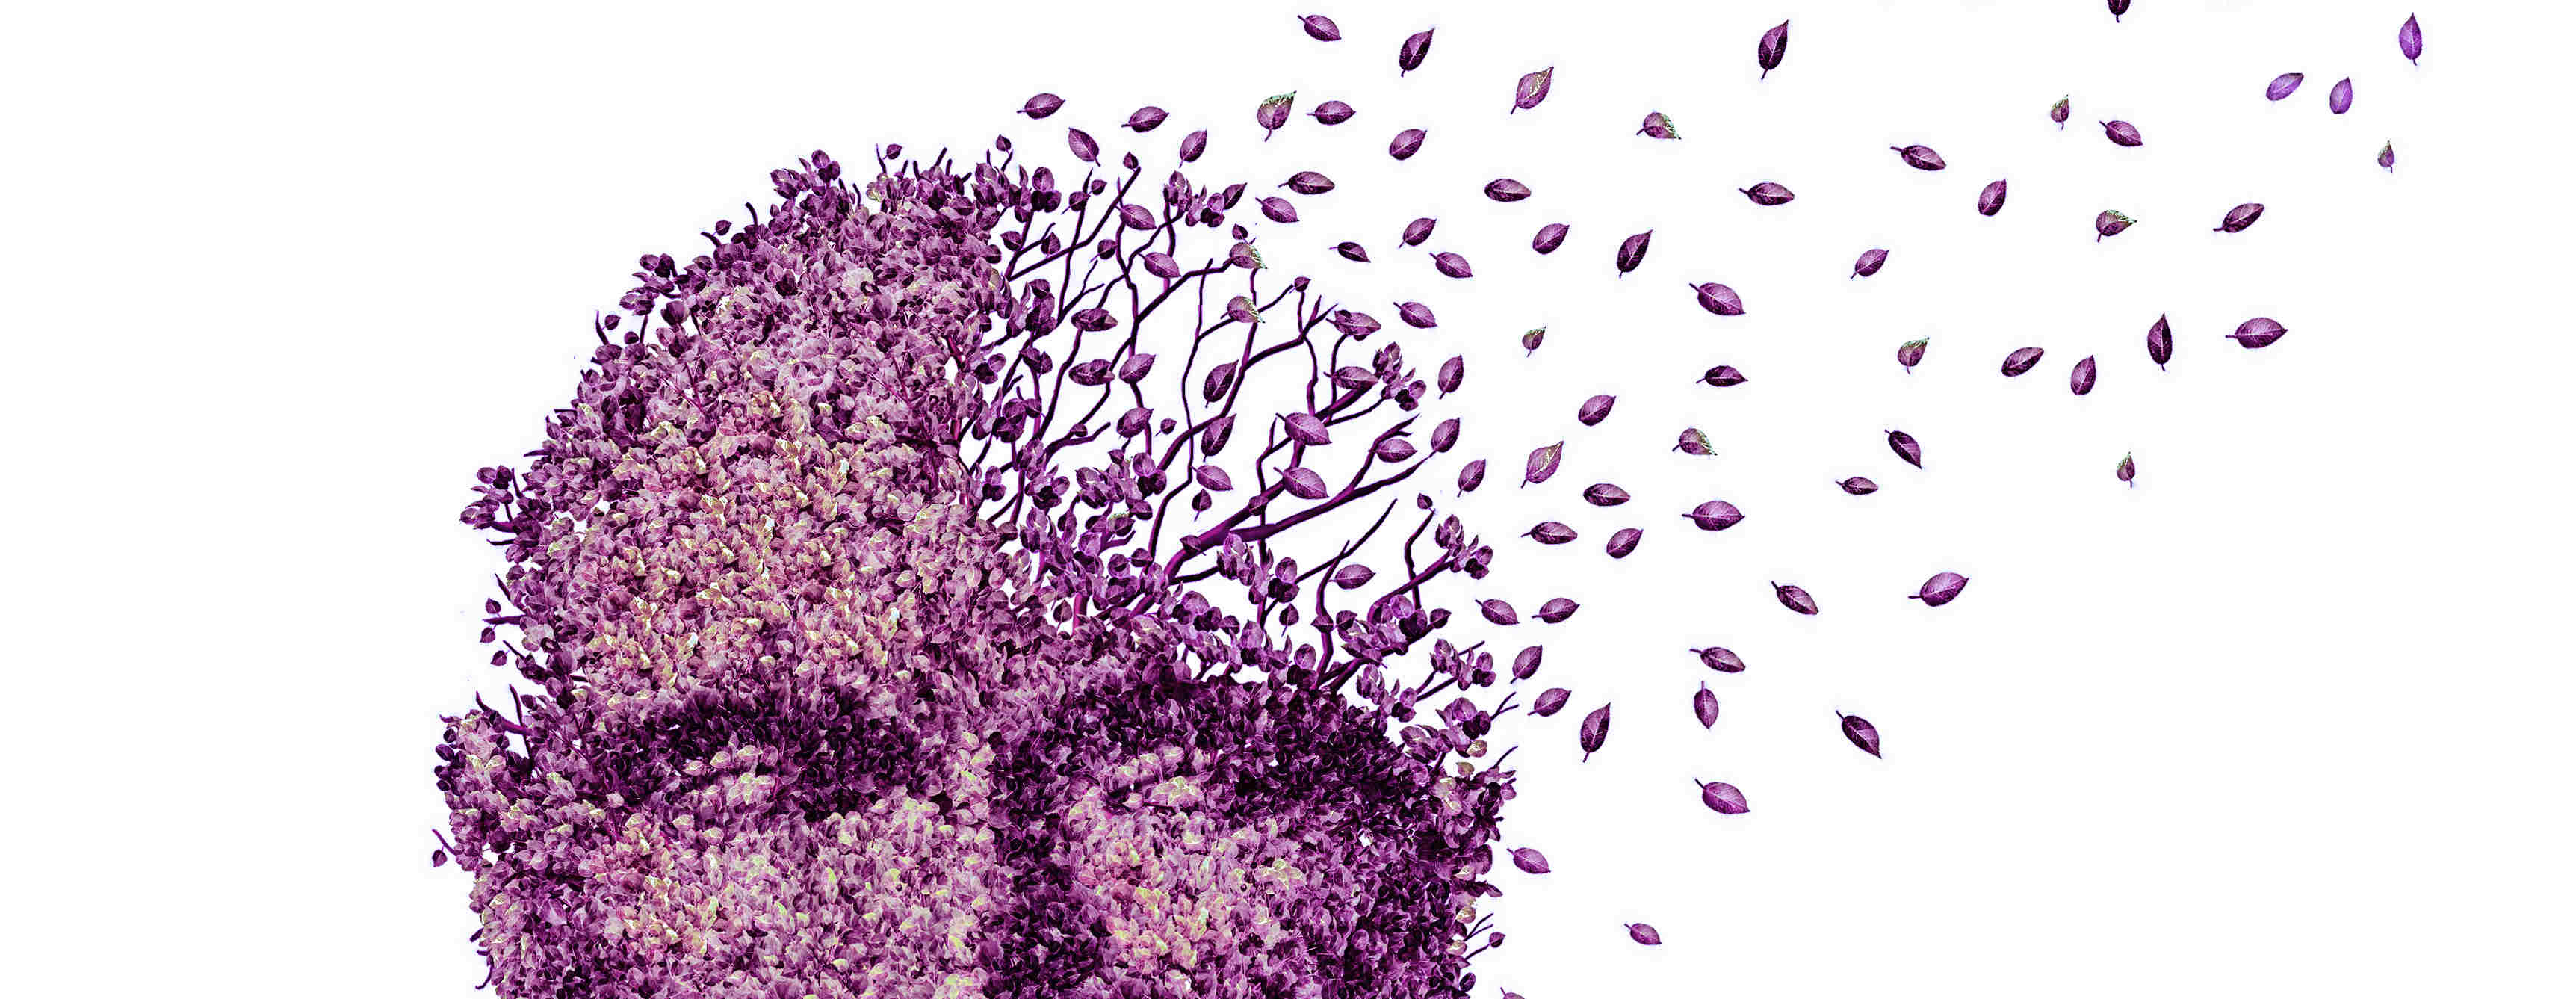 Dementia disease dealing with Alzheimer's illness as a medical icon of a tree in the shape of a front view human head and brain losing leaves as challenges in intelligence and memory loss due to injury or old age.